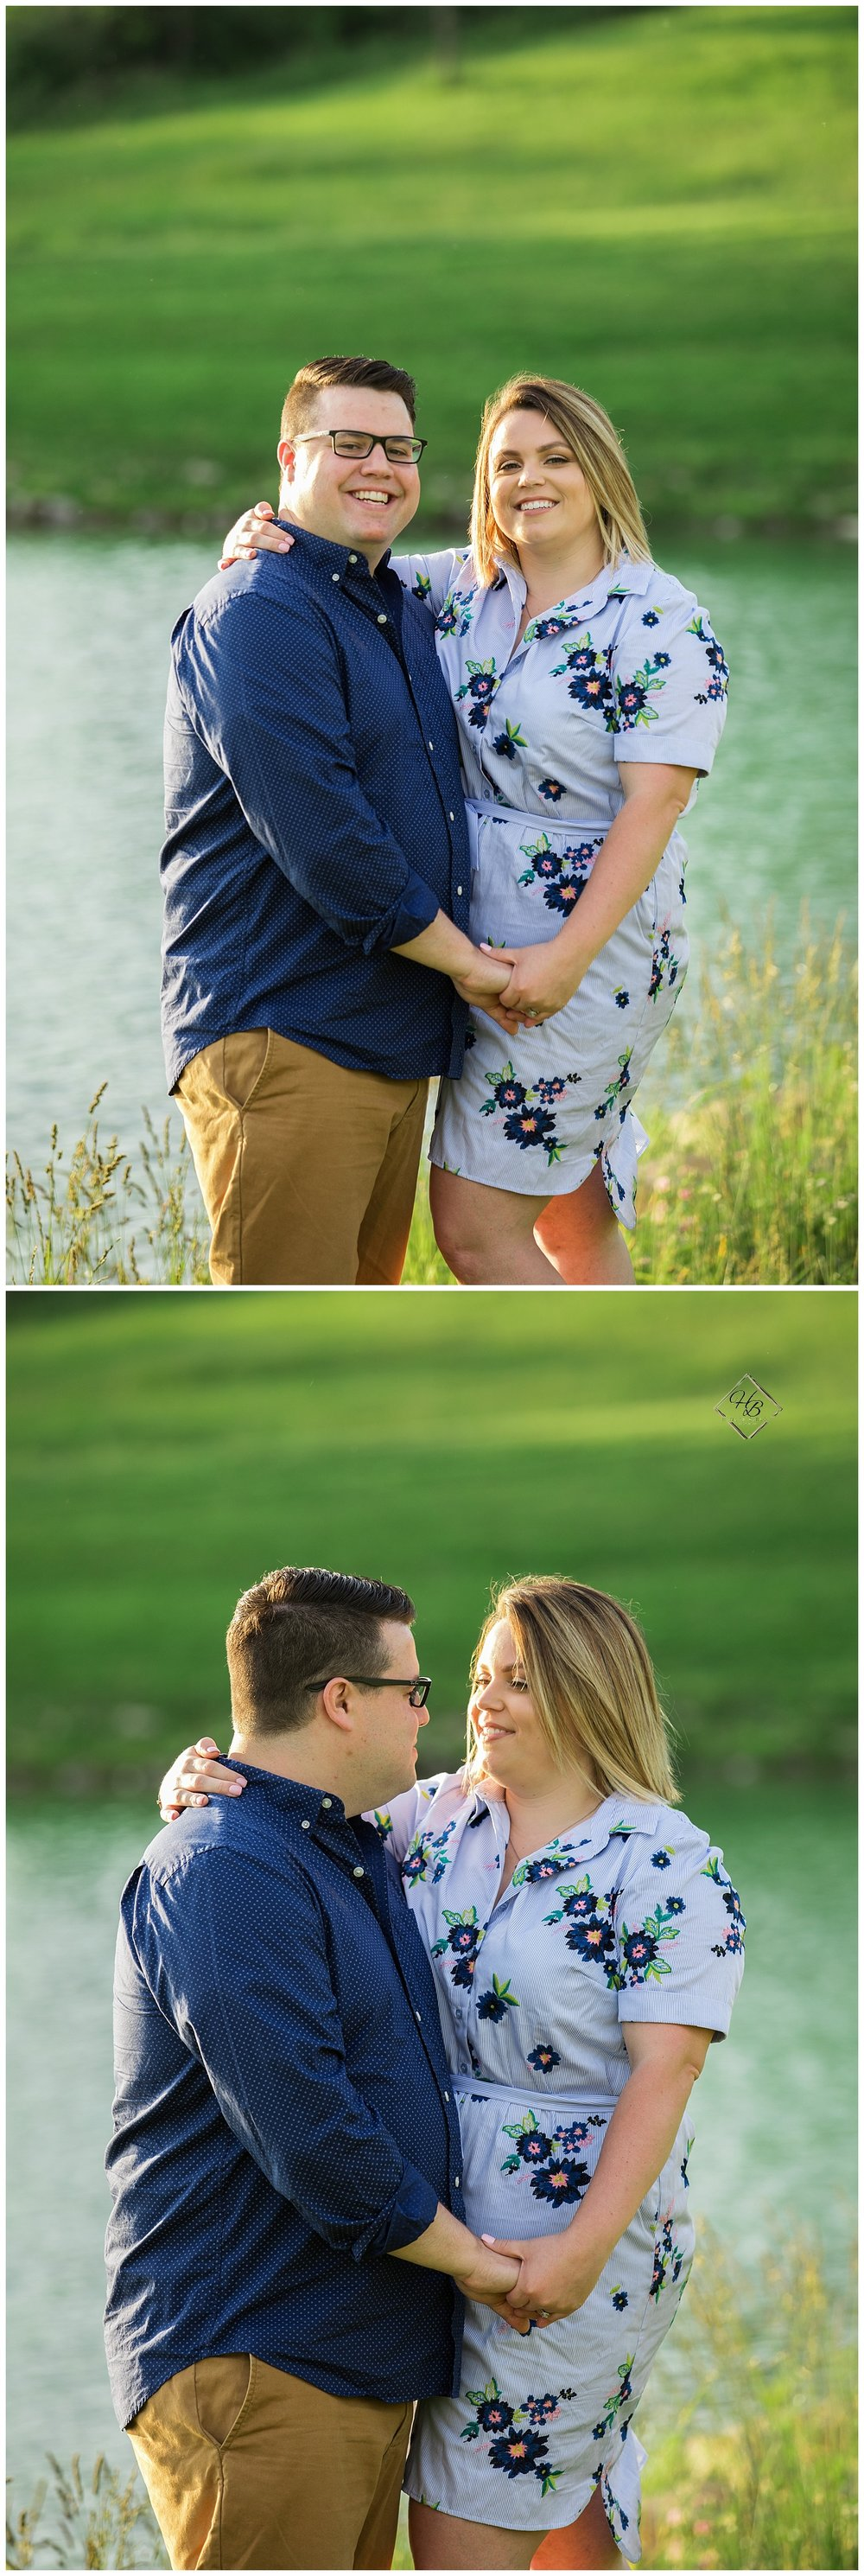 Friendship Park, OH Engagement Photos.jpg